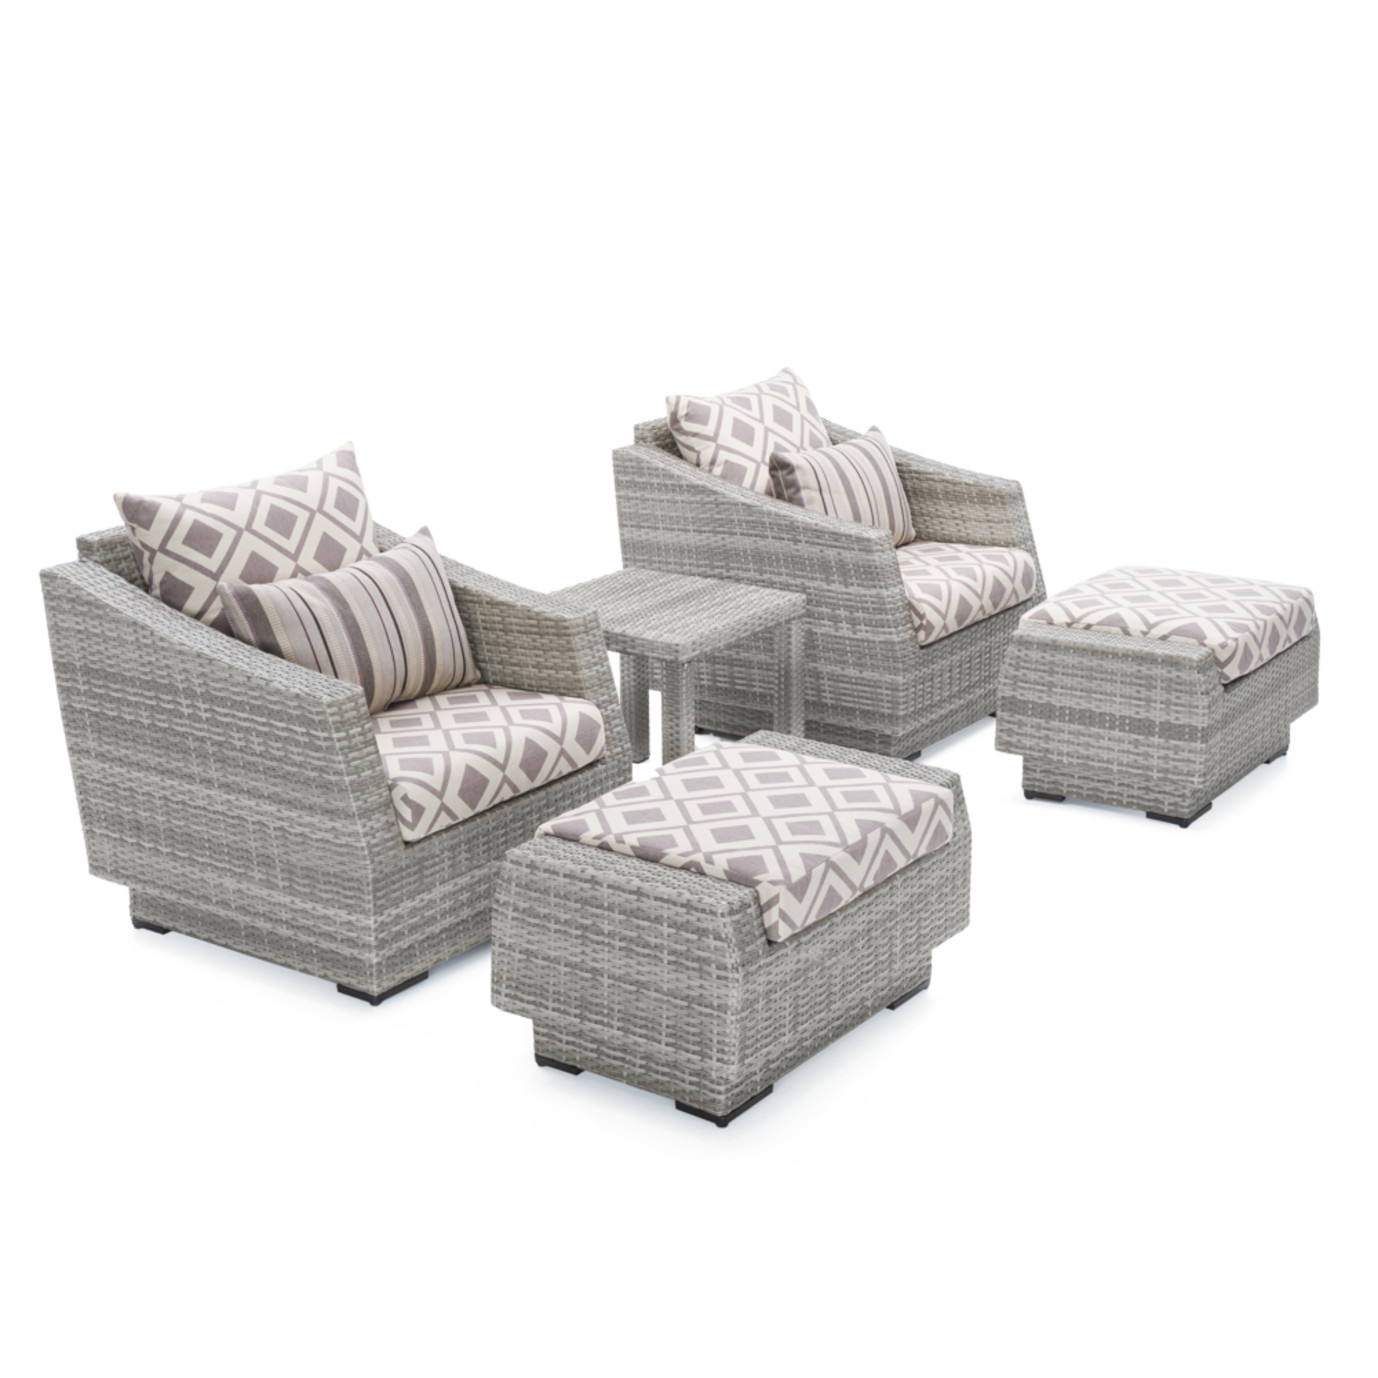 Cannes™ 5pc Club Chair & Ottoman Set - Wisteria Lavender